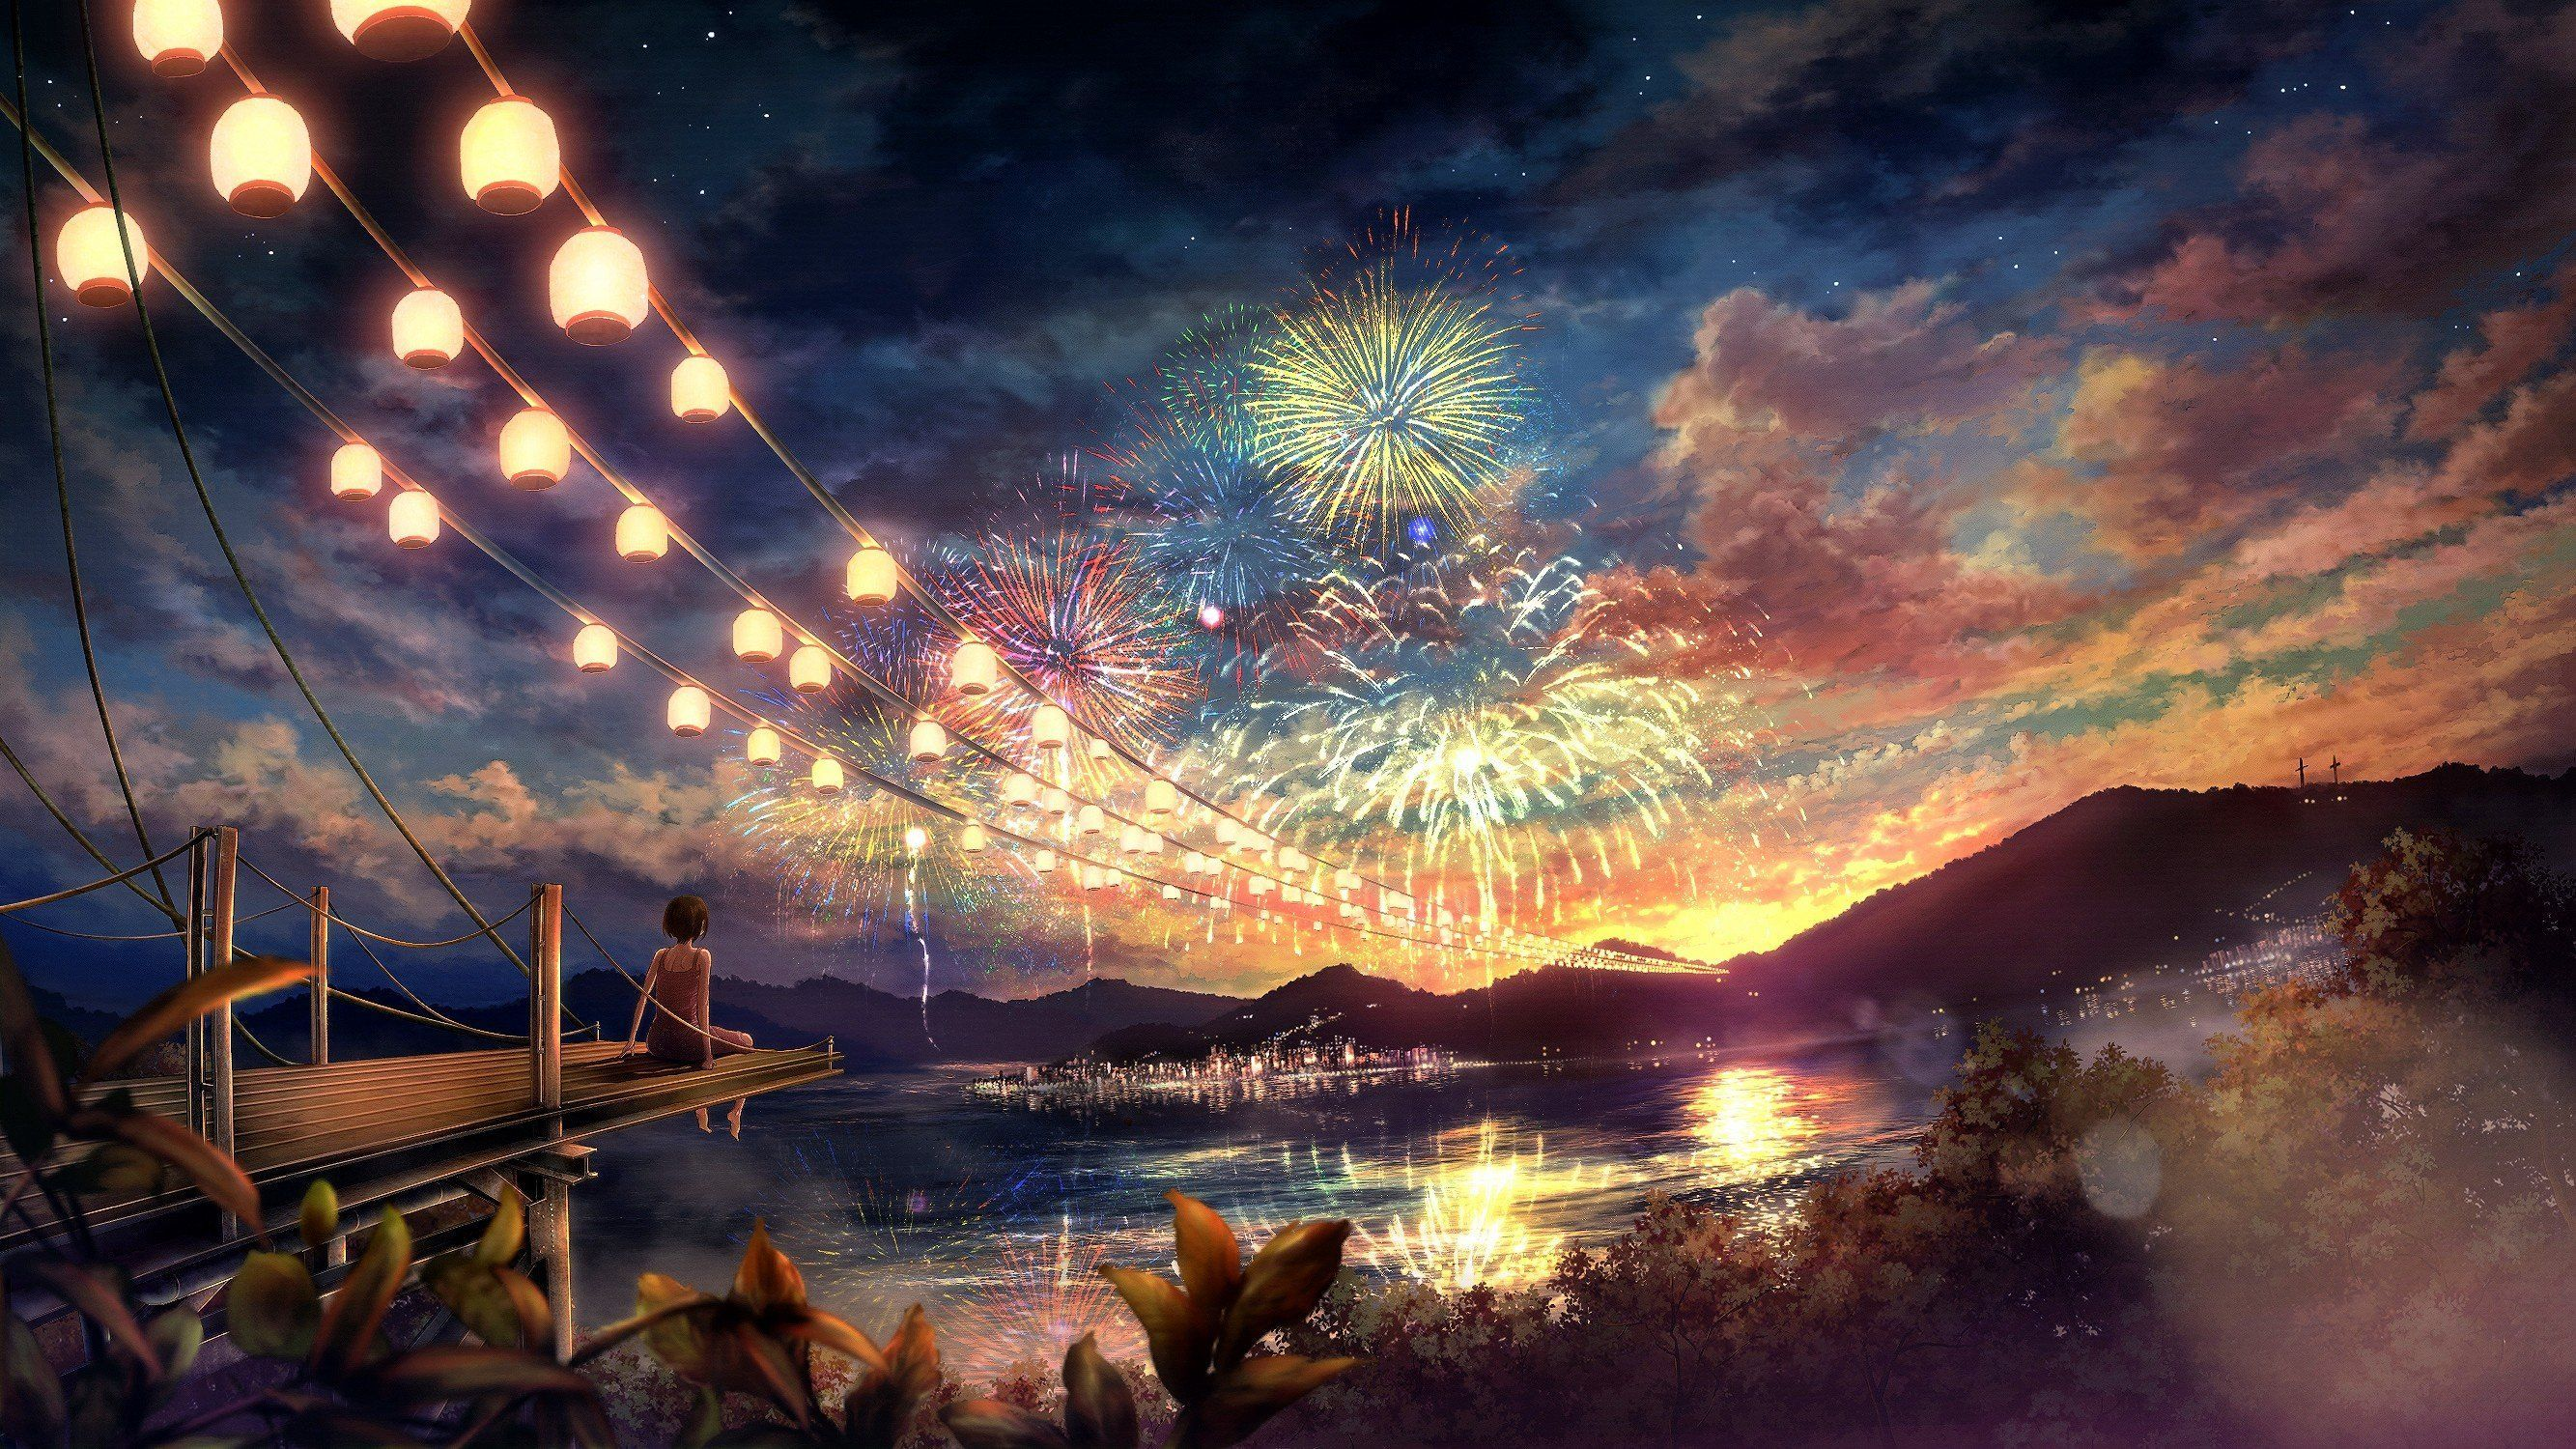 4k Anime Scenery Wallpapers Top Free 4k Anime Scenery Backgrounds Wallpaperaccess